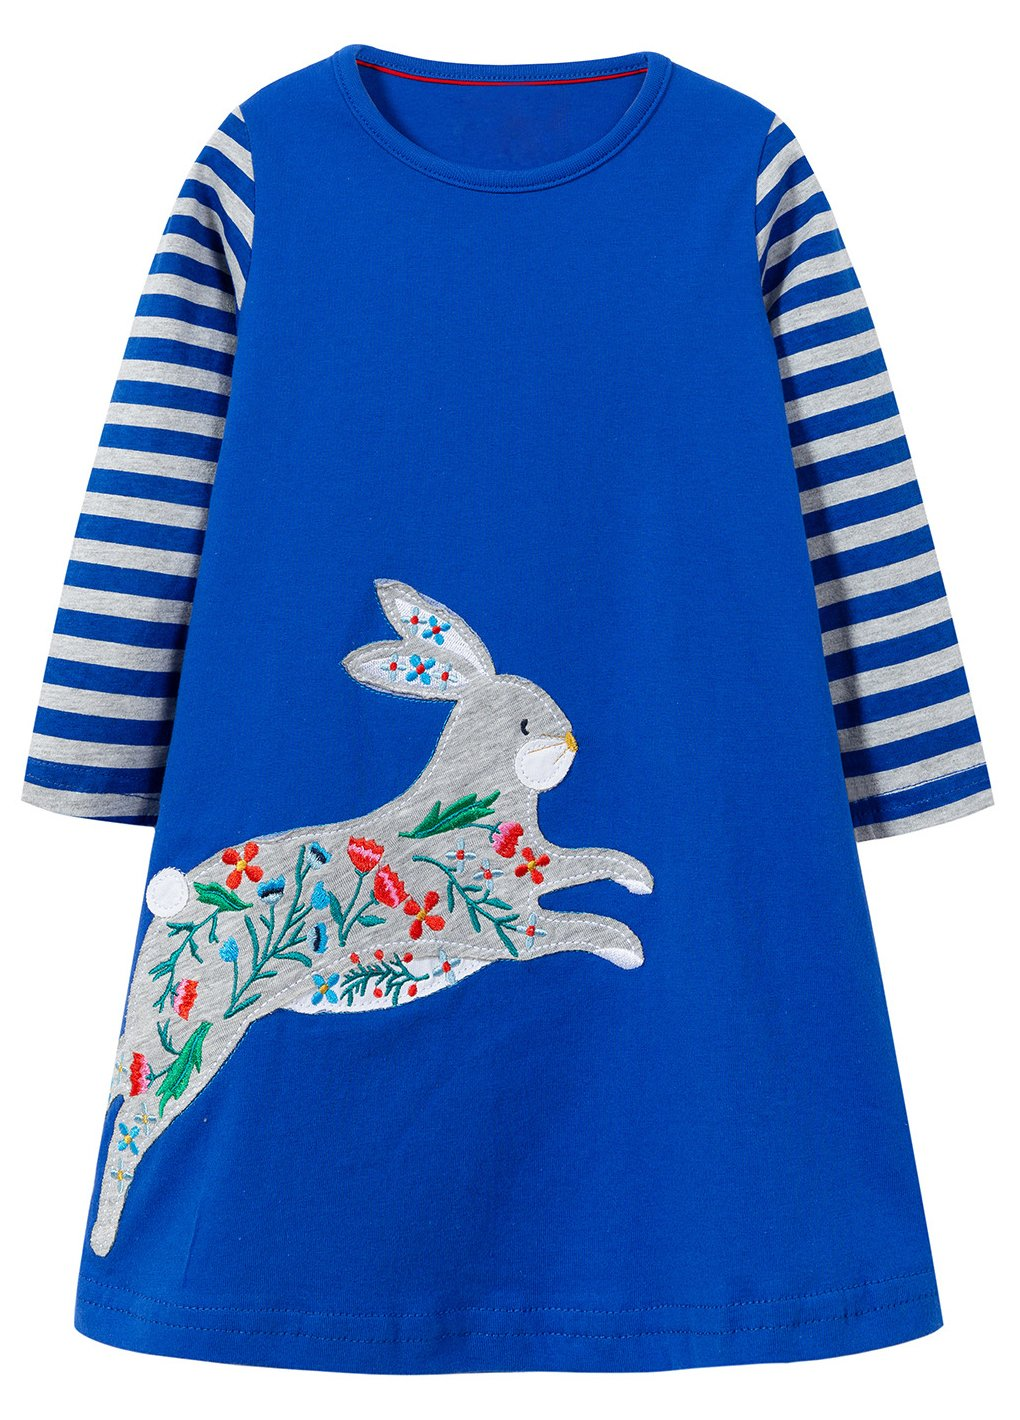 MISSHALO Girls Summer Casual Cotton Short Sleeves Printed Dresses(7665,7T/7-8YRS)